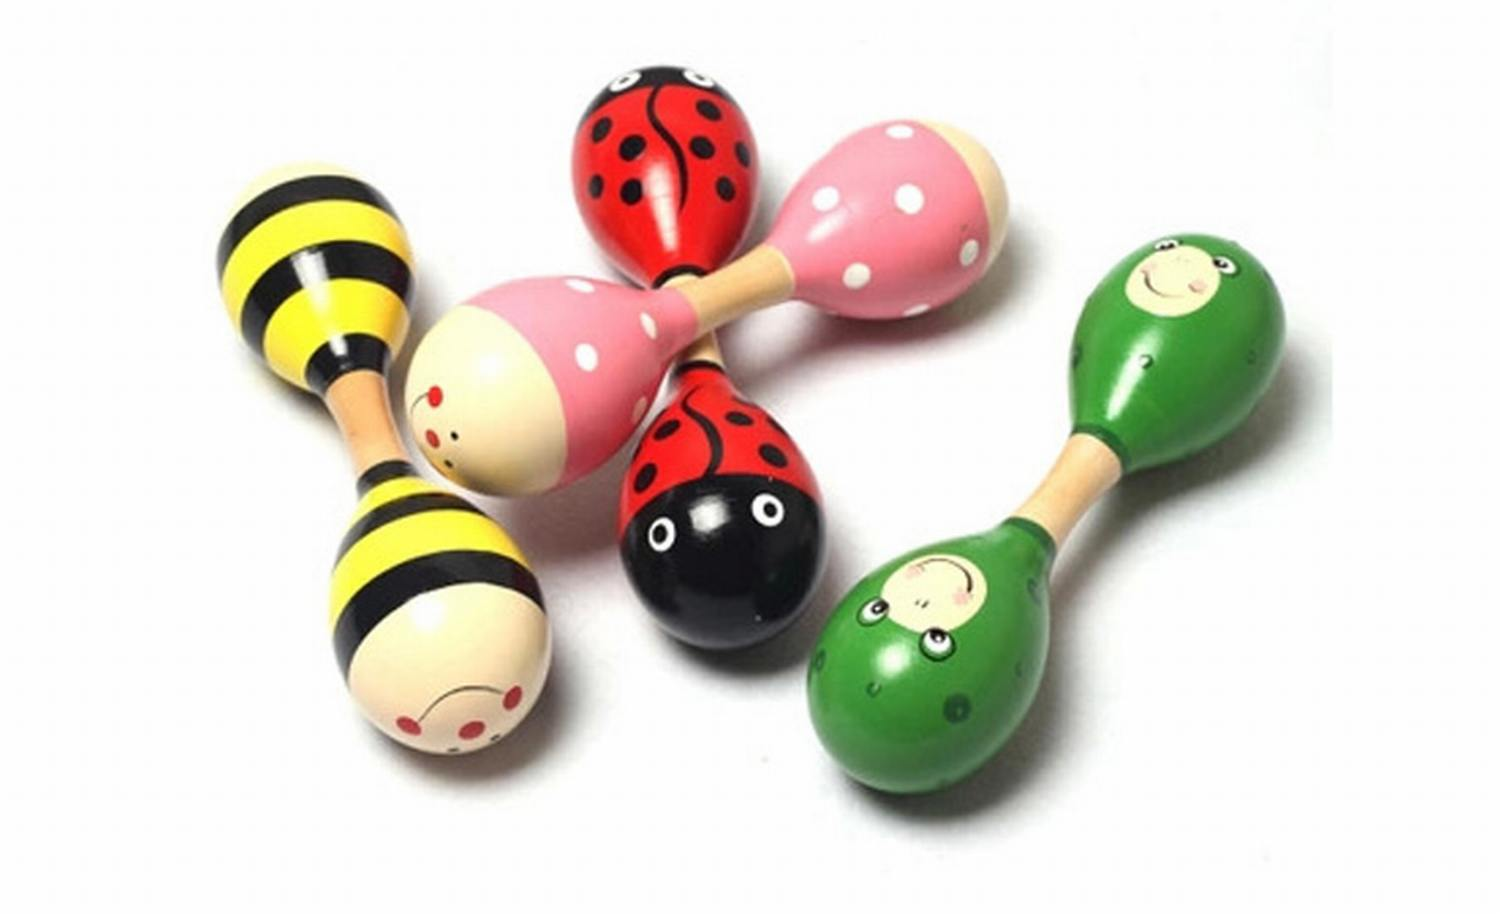 14.5cm Classic Wooden Rattle Bell Maracas Double Head Sand Hammer Percussion Musical Instruments Baby Children Educational Toys